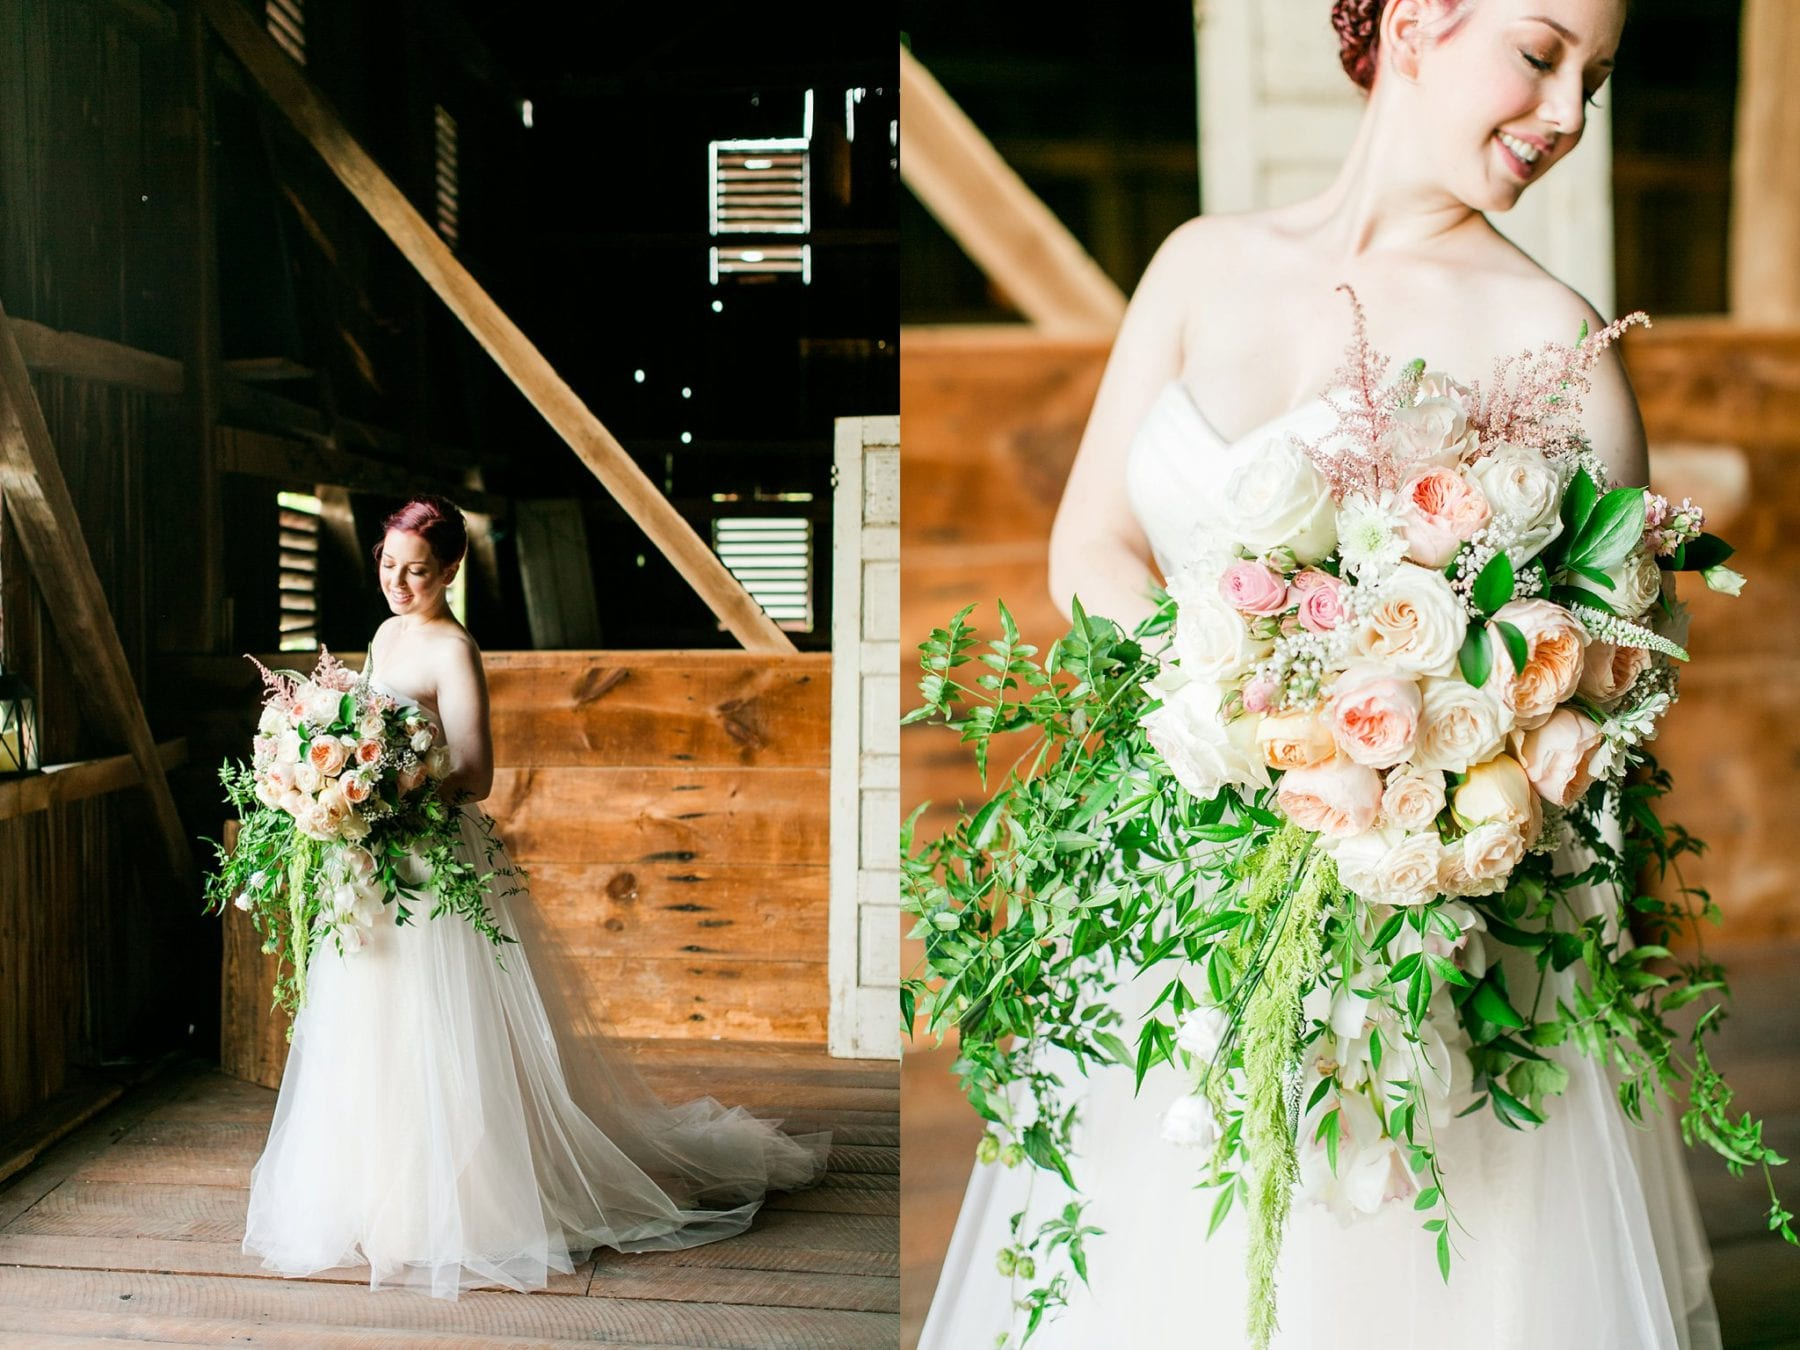 Rocklands Farm Wedding Virginia Wedding Photographer Megan Kelsey Photography Jessica & Jason-21.jpg